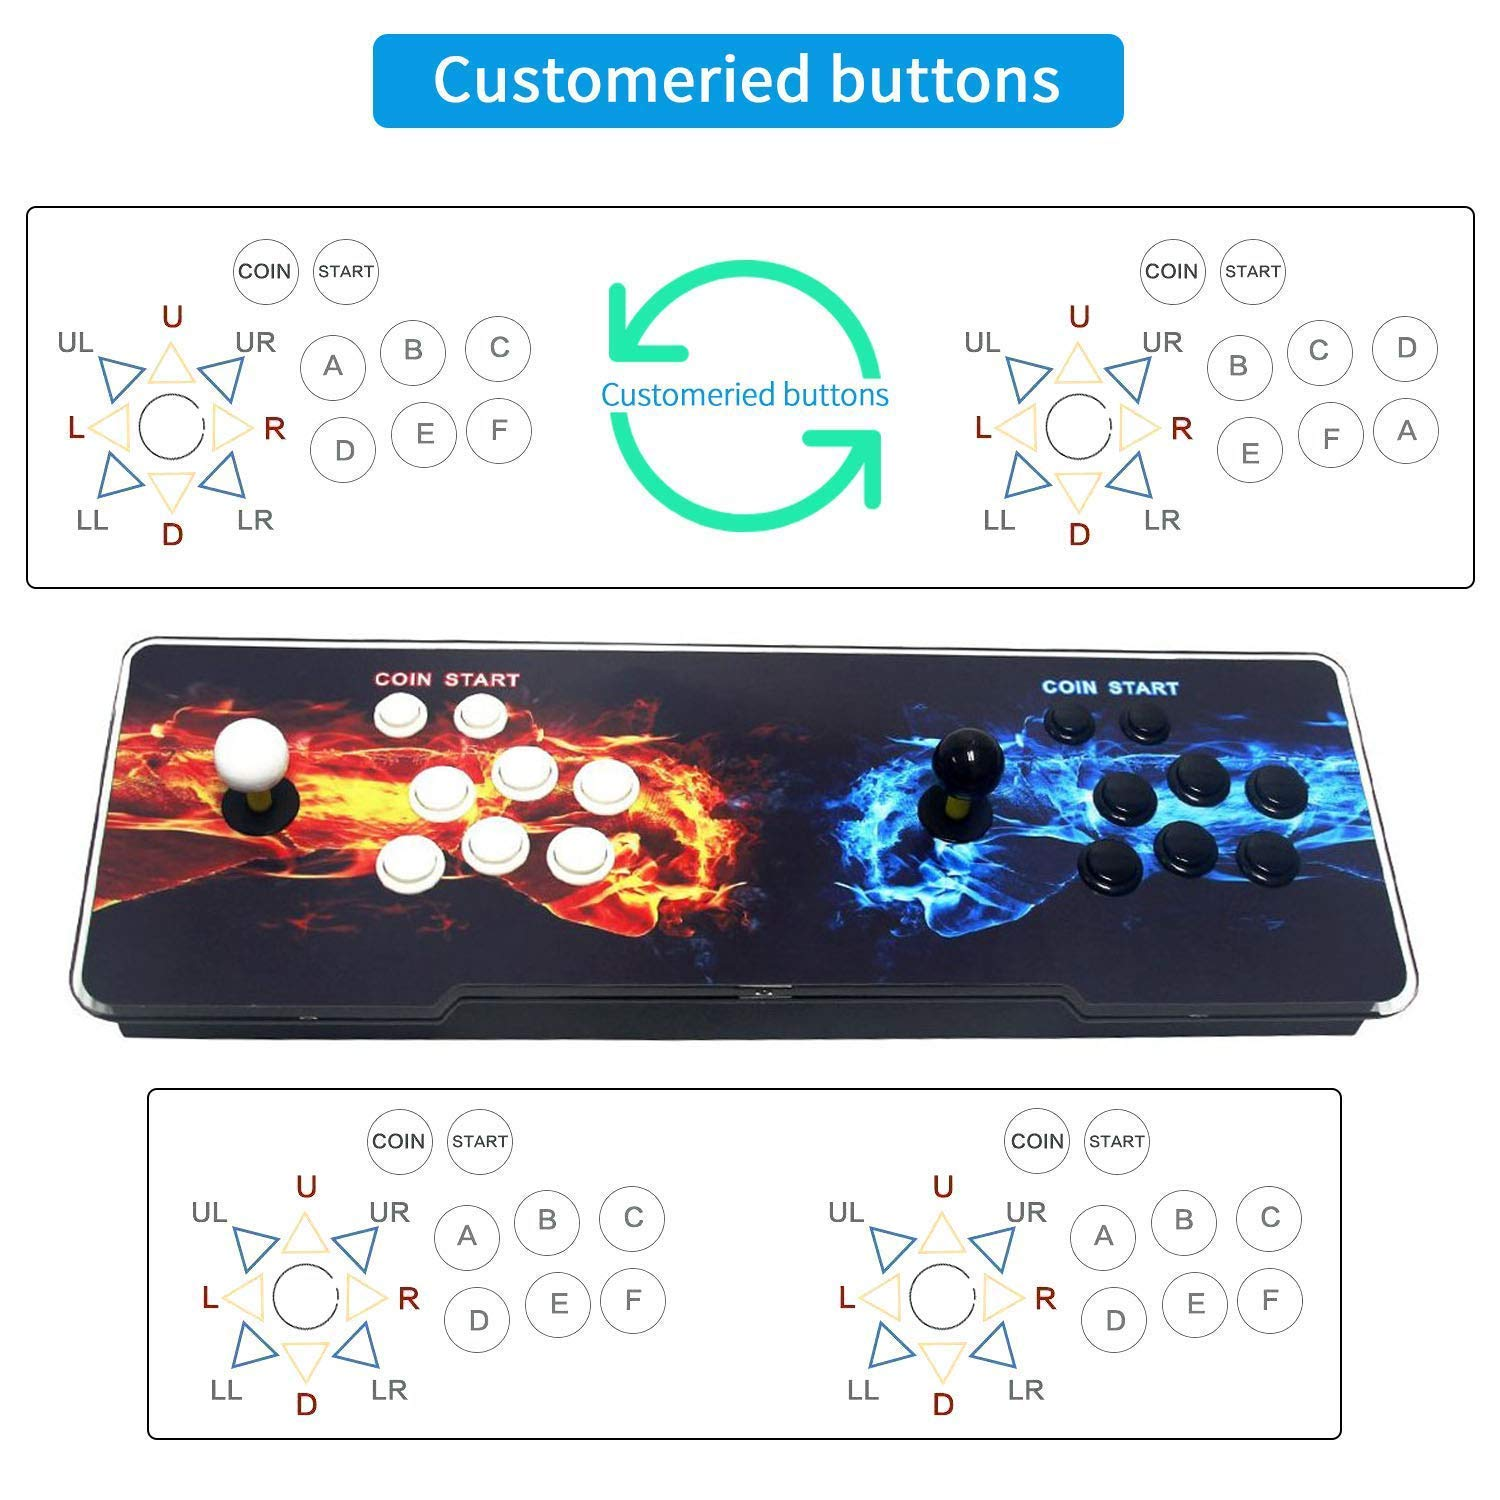 SeeKool Pandora 11 Arcade Video Game Console, 2255 in 1 Retro Video Games Colorful LED Double Stick Arcade Console, HDMI VGA USB Newest System Arcade Machine, Built-in Speaker by SeeKool (Image #7)